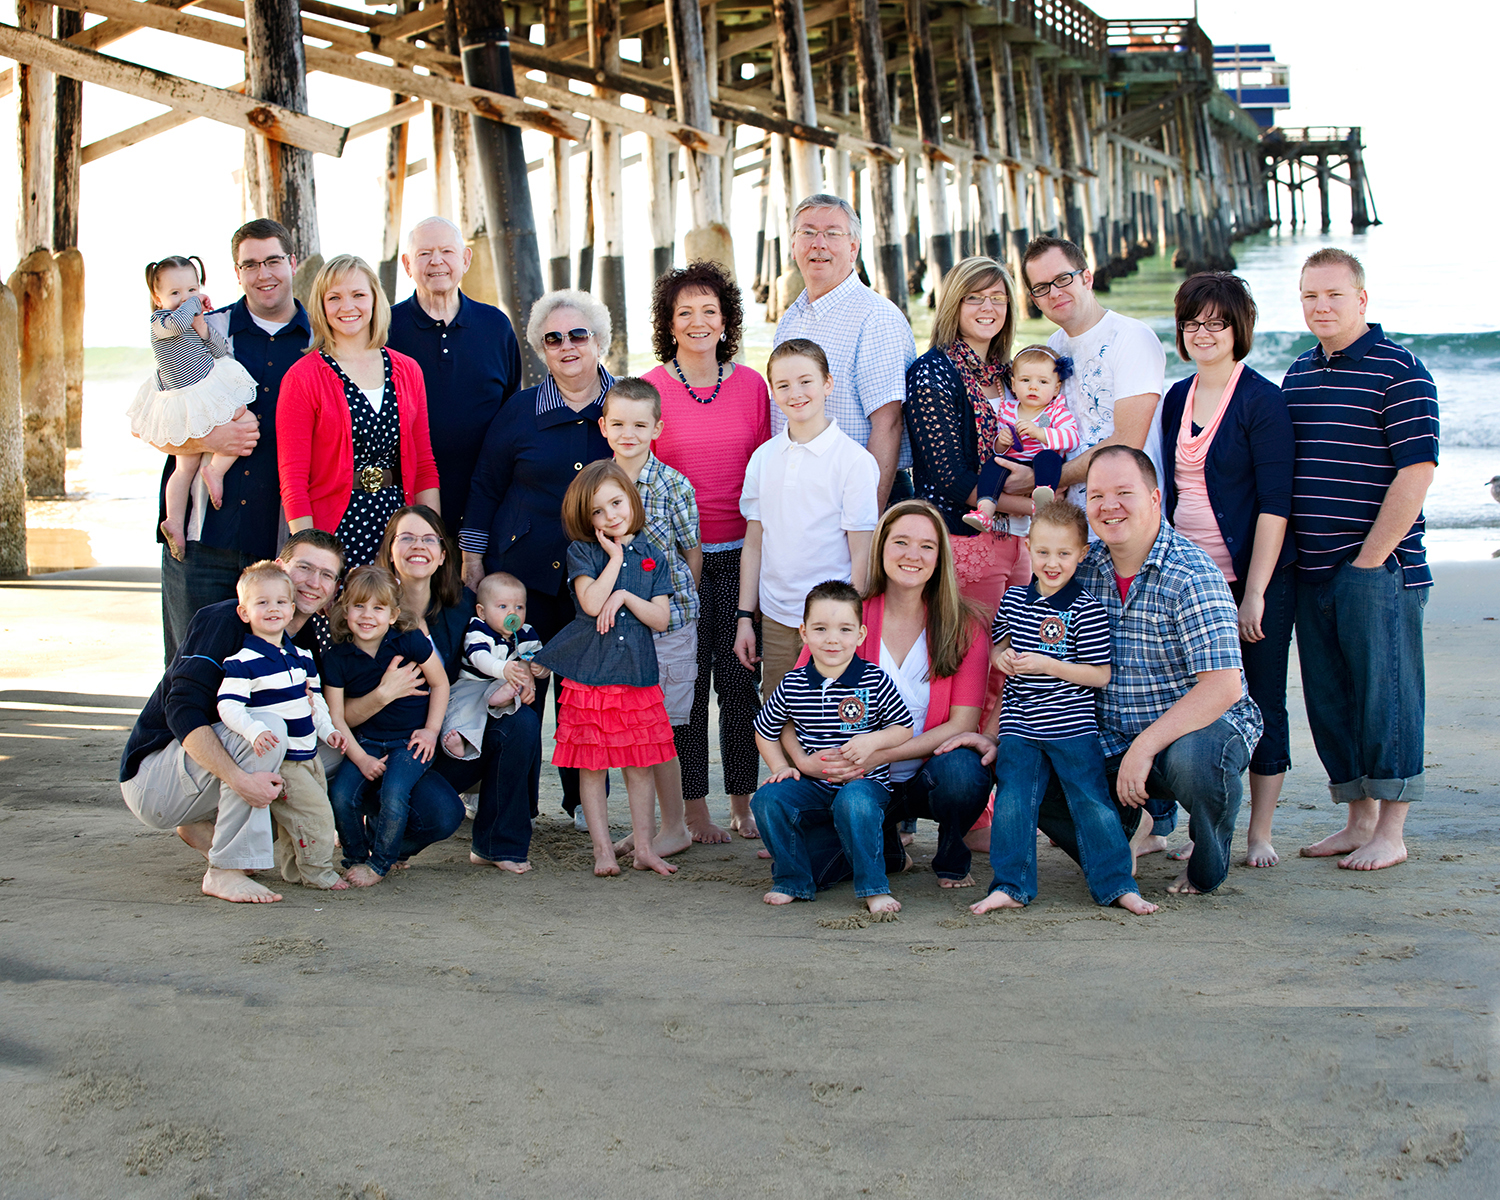 California Family Photos beach pier sand waves